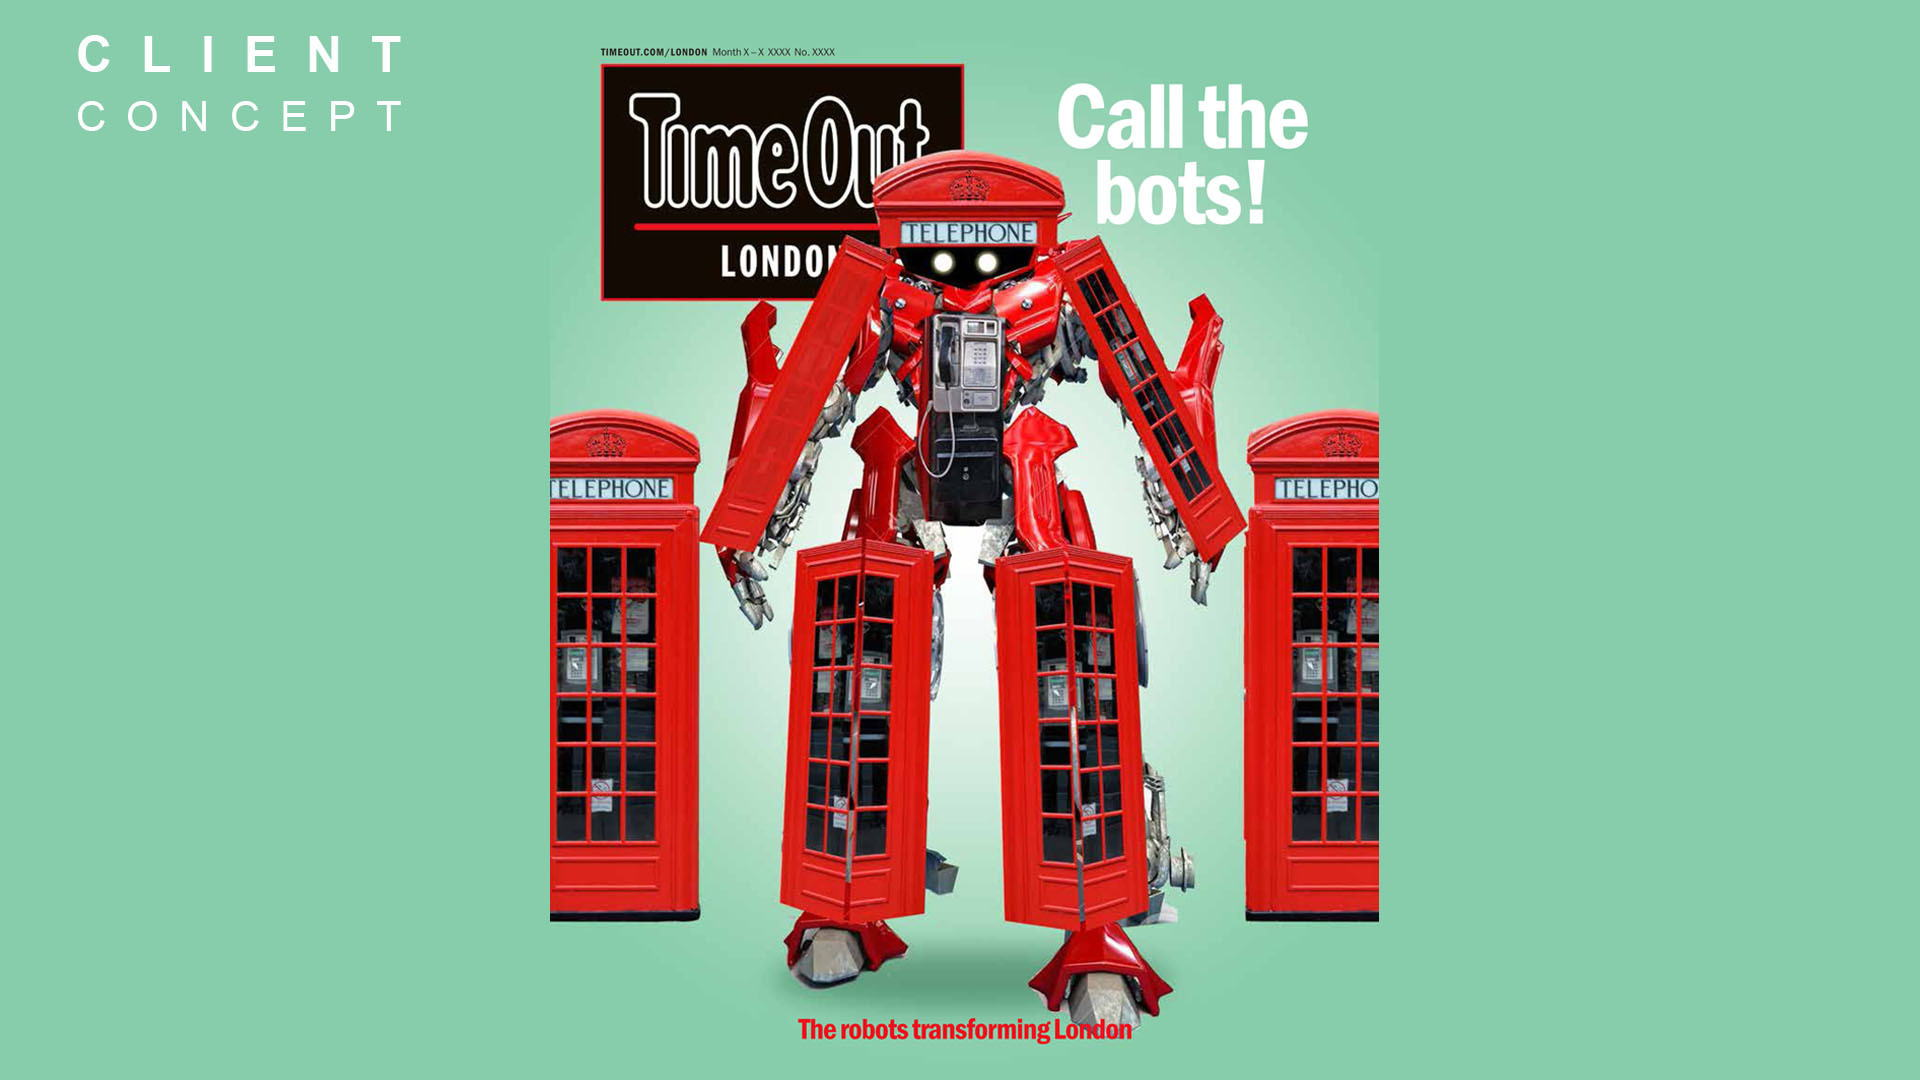 concept design featuring a red transformer robot standing in front of two british red telephone boxes